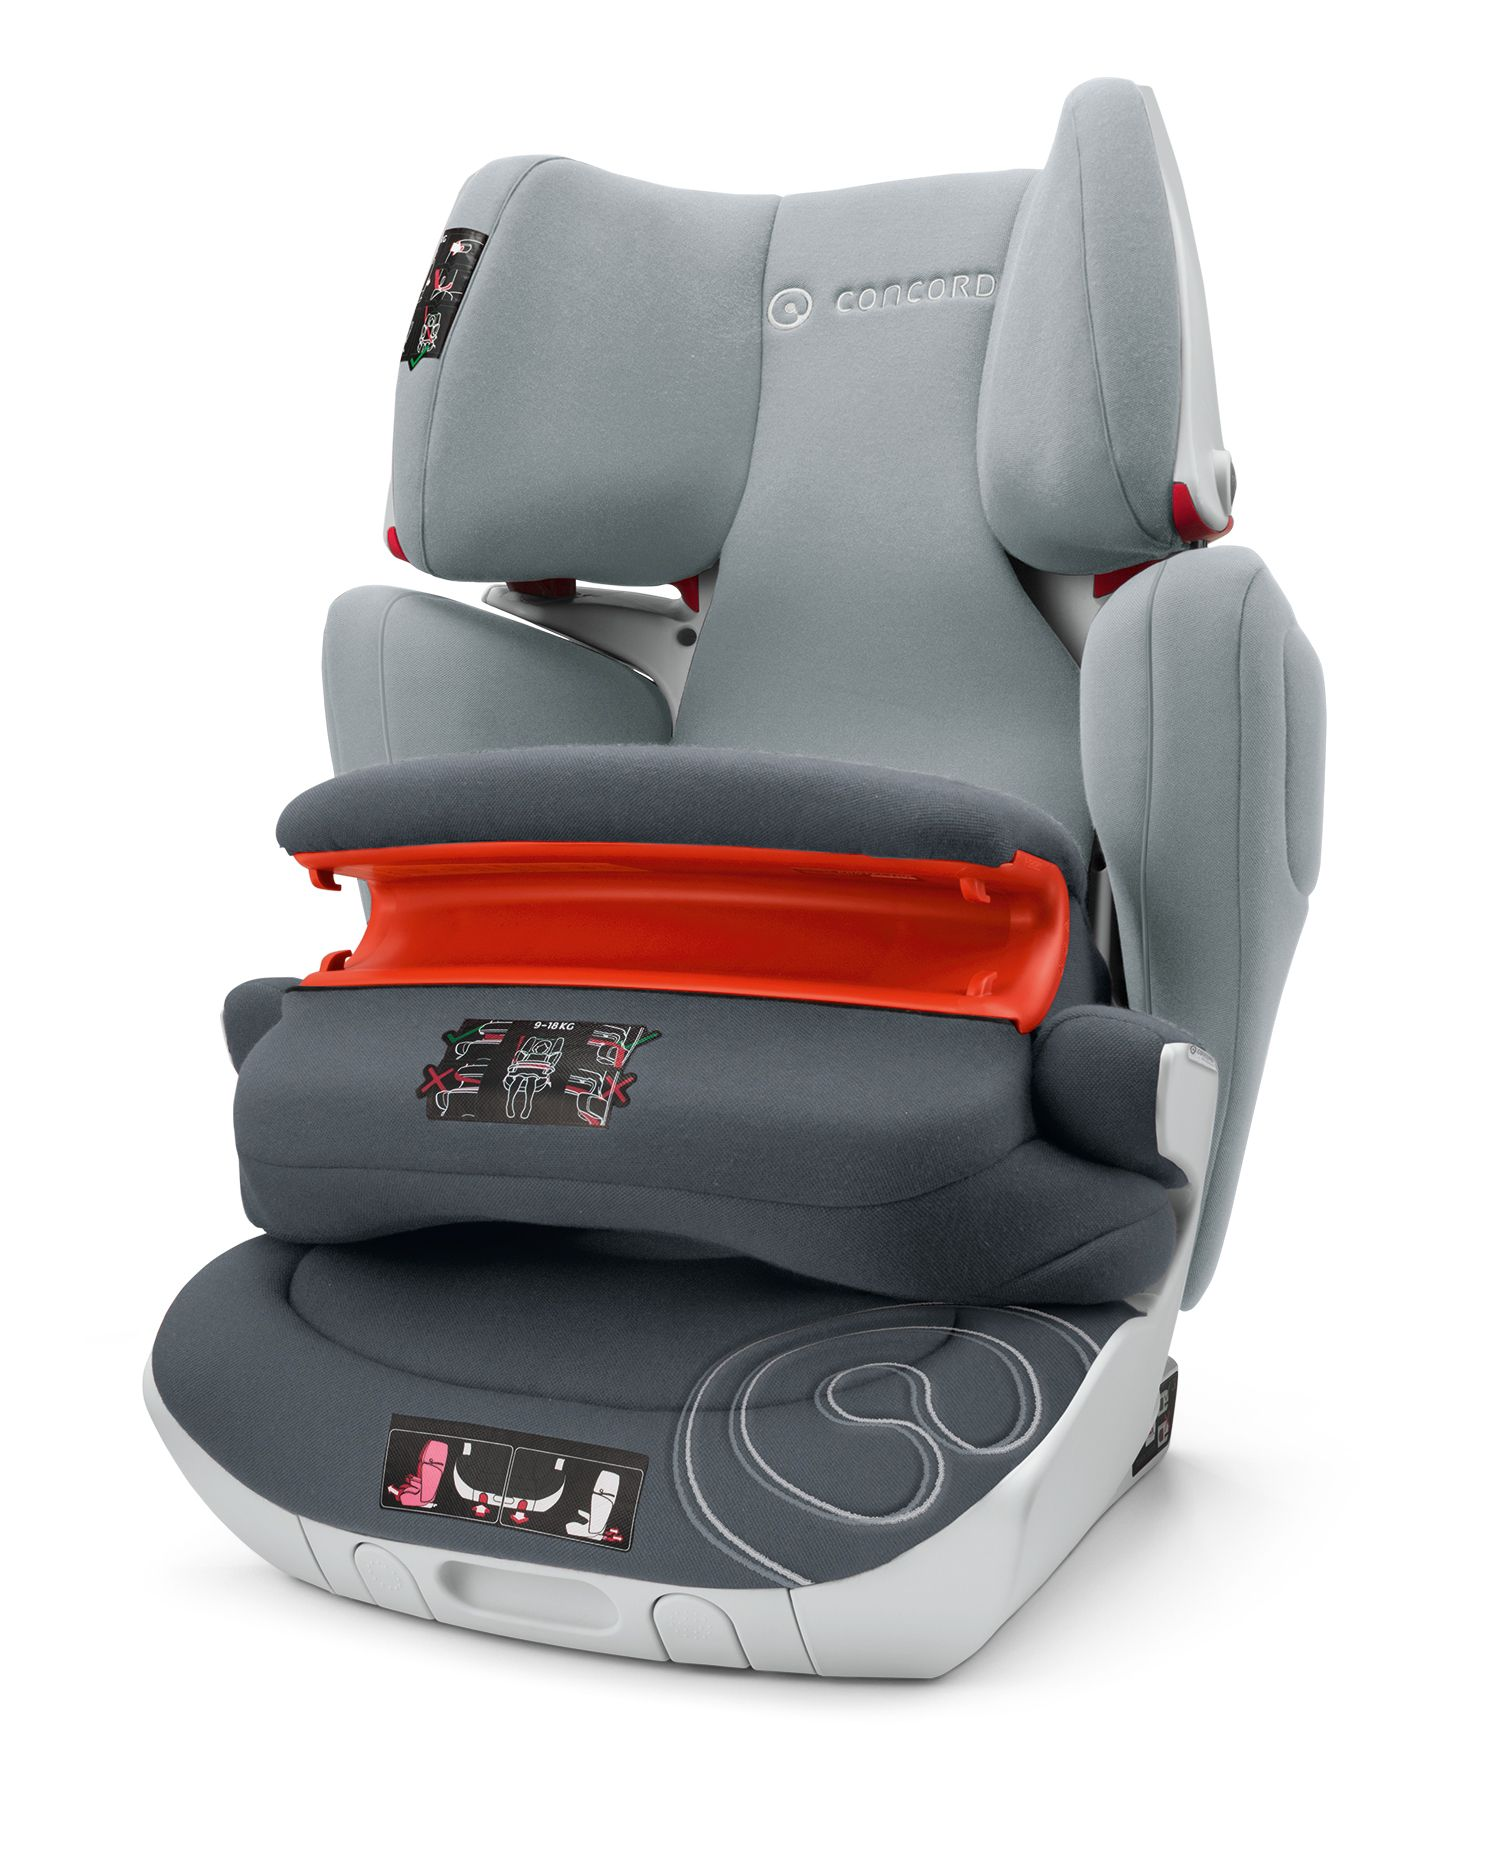 Concord baby car seats: model overview, features and reviews 63